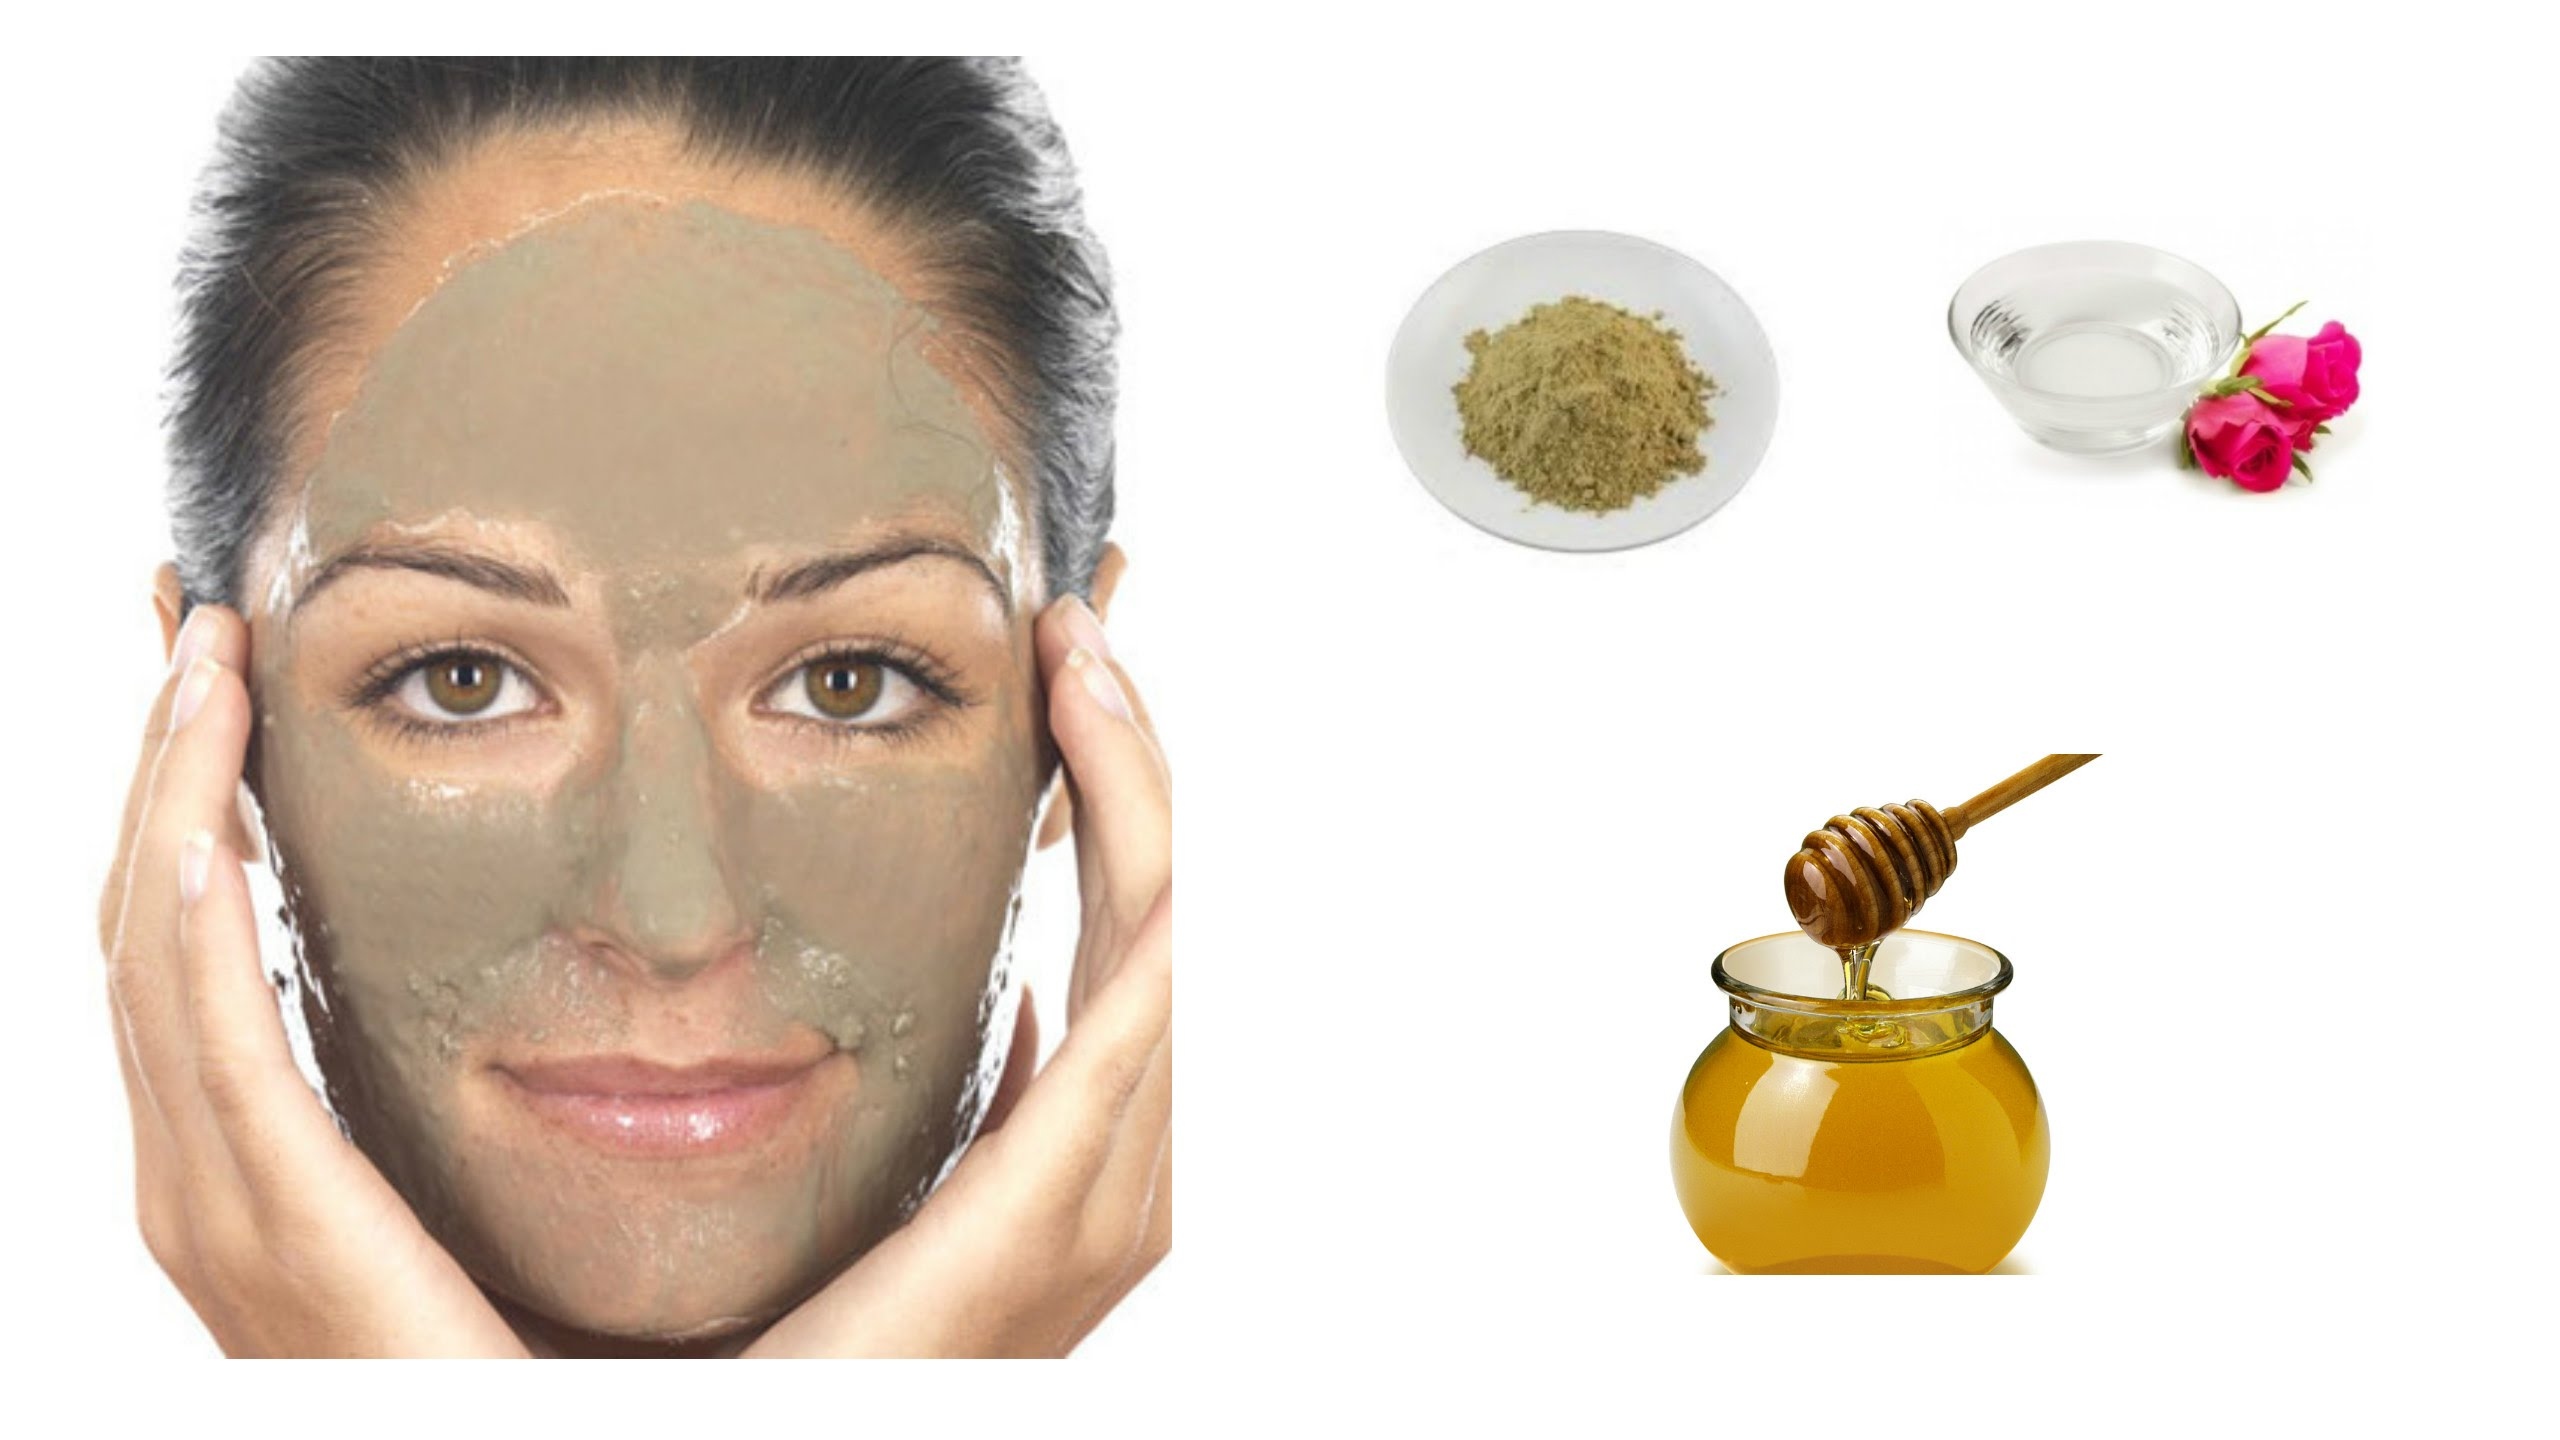 Multani Mitti Face Pack for Acne